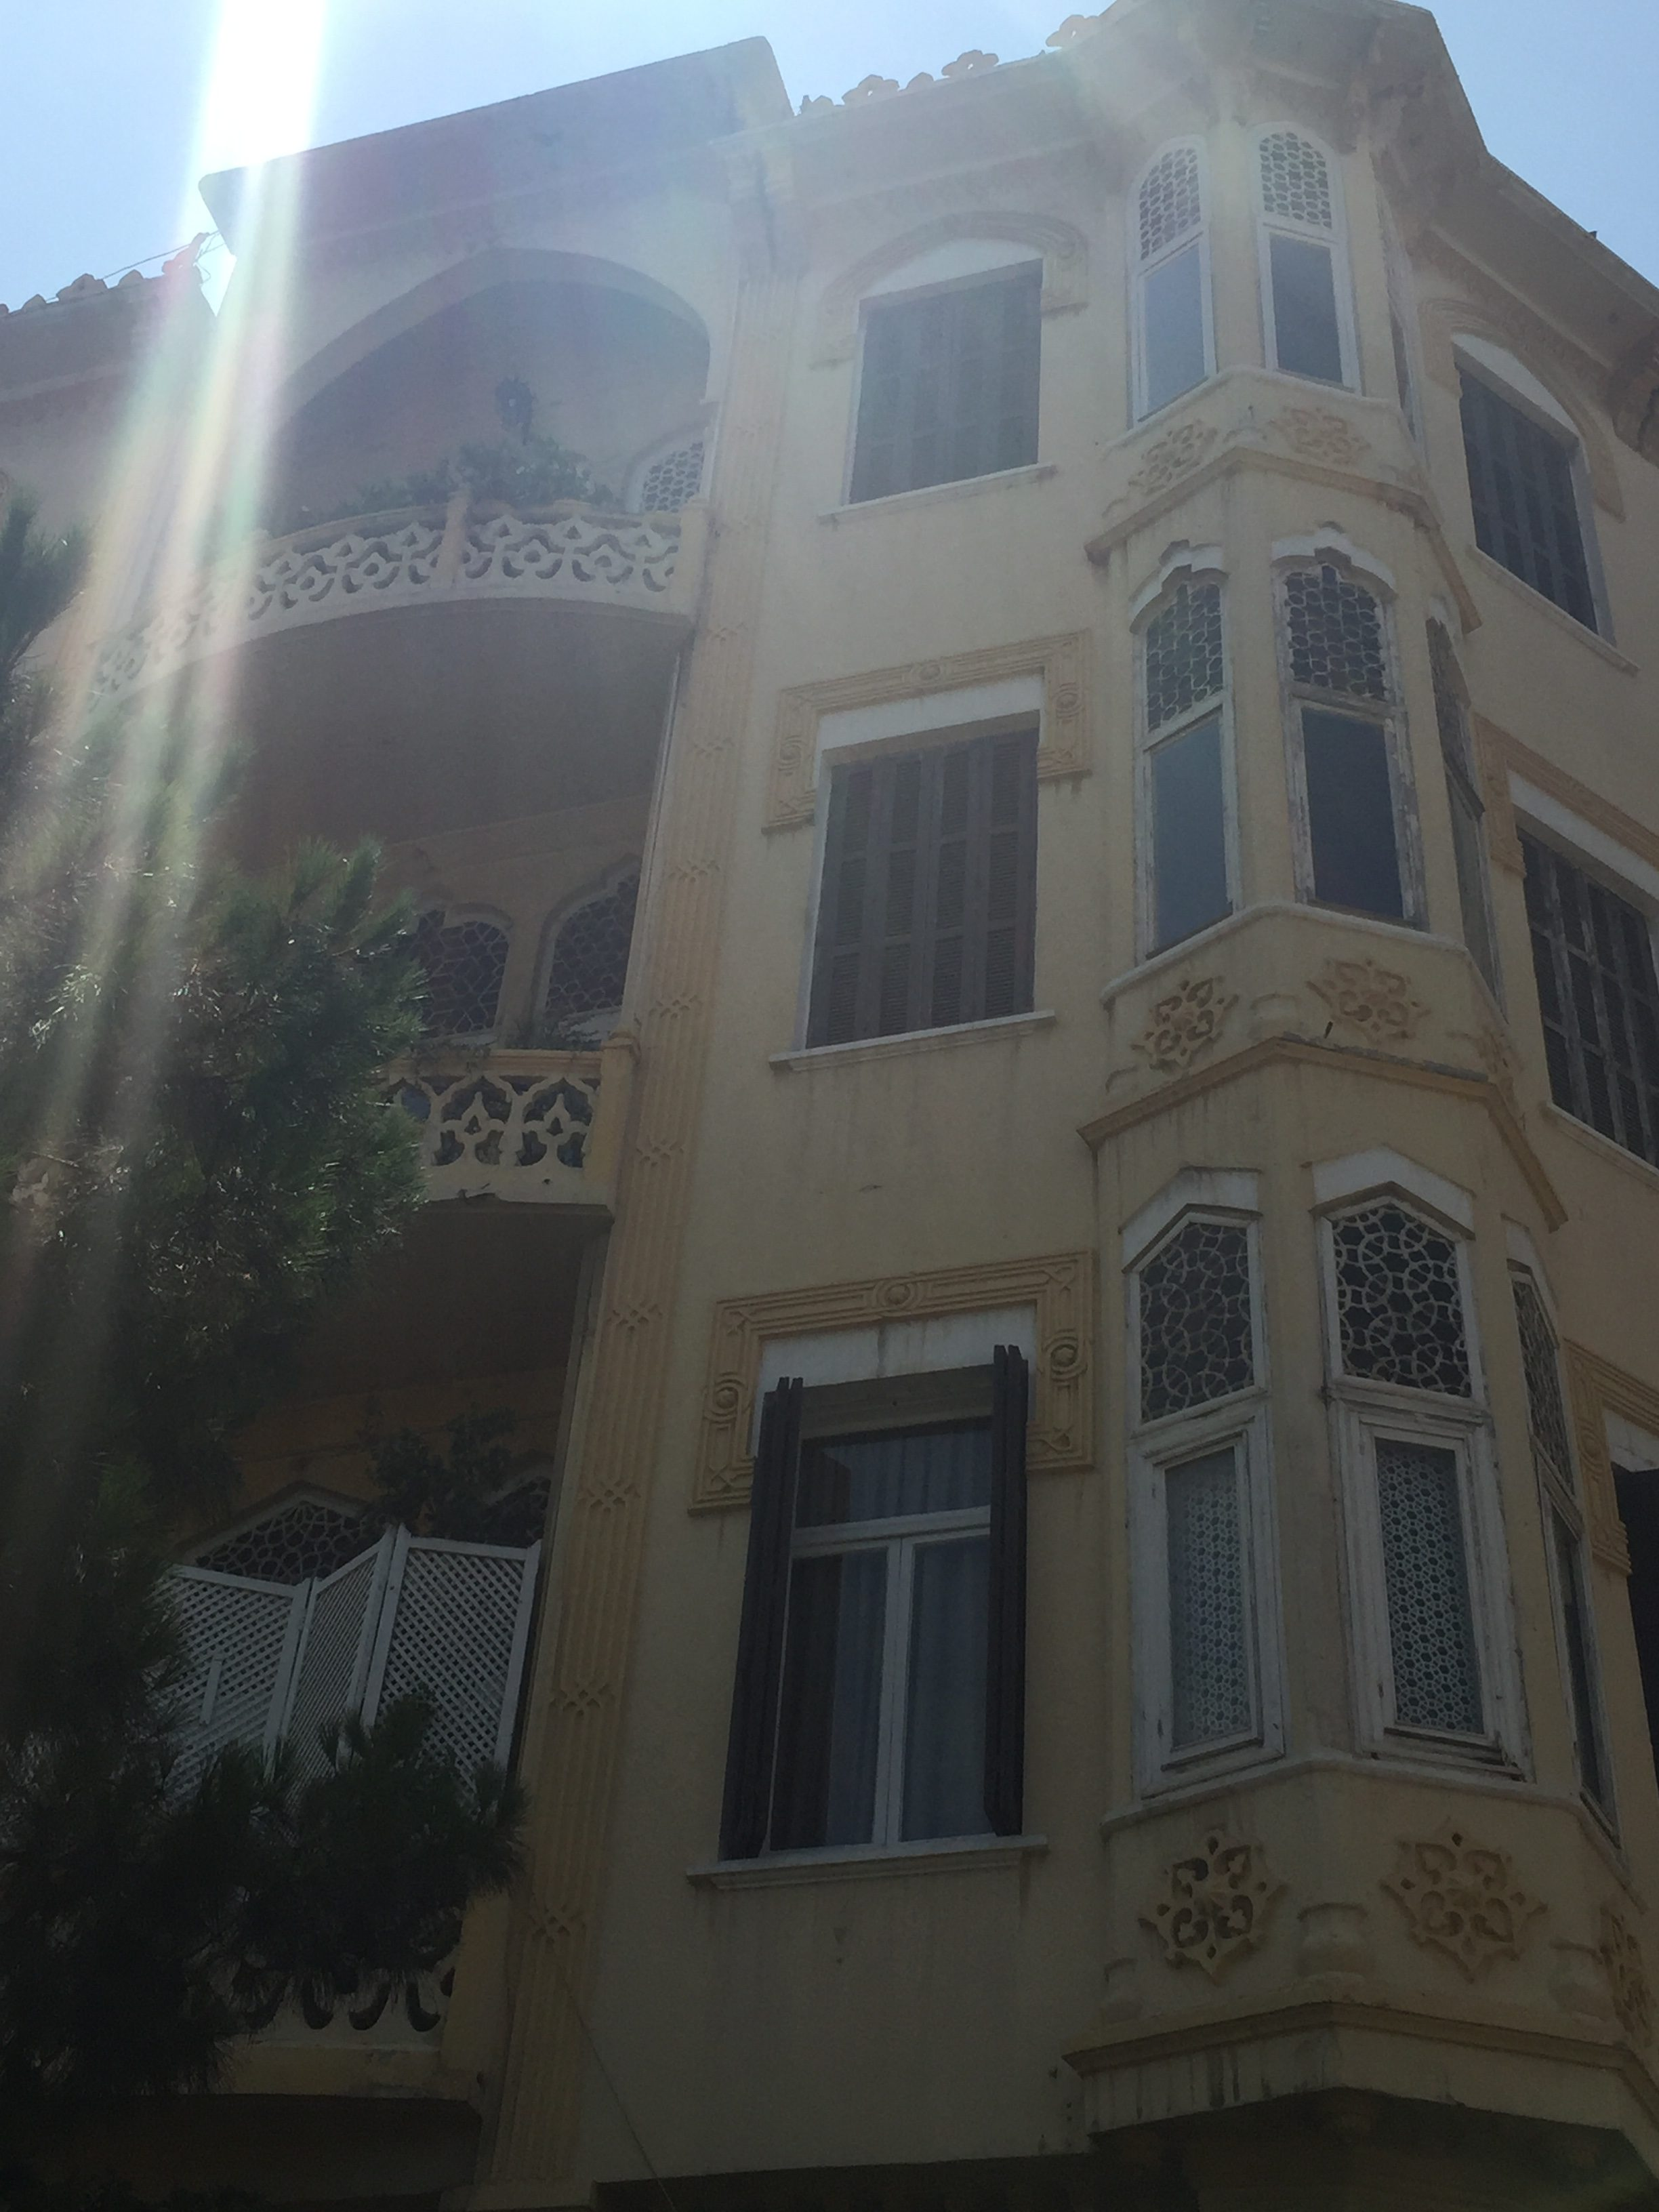 Building from early Beirut, the Republic of Lebanon